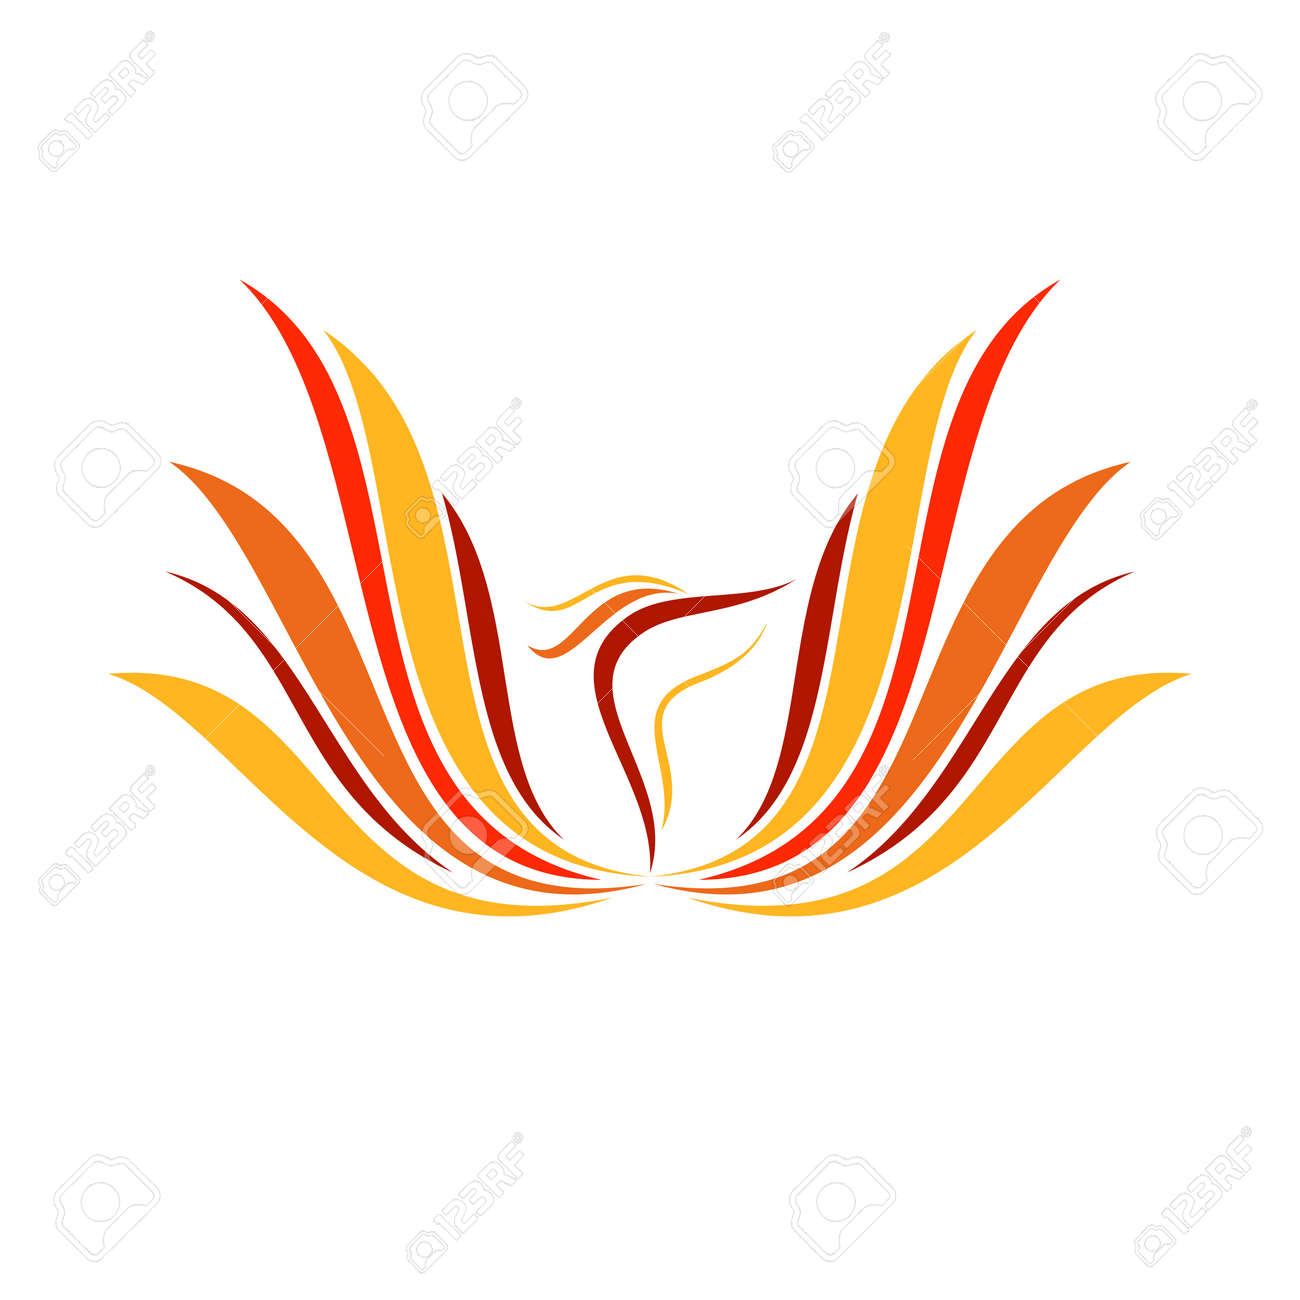 Abstract Flame Phoenix Wings Line Art Vector Symbol Graphic Logo